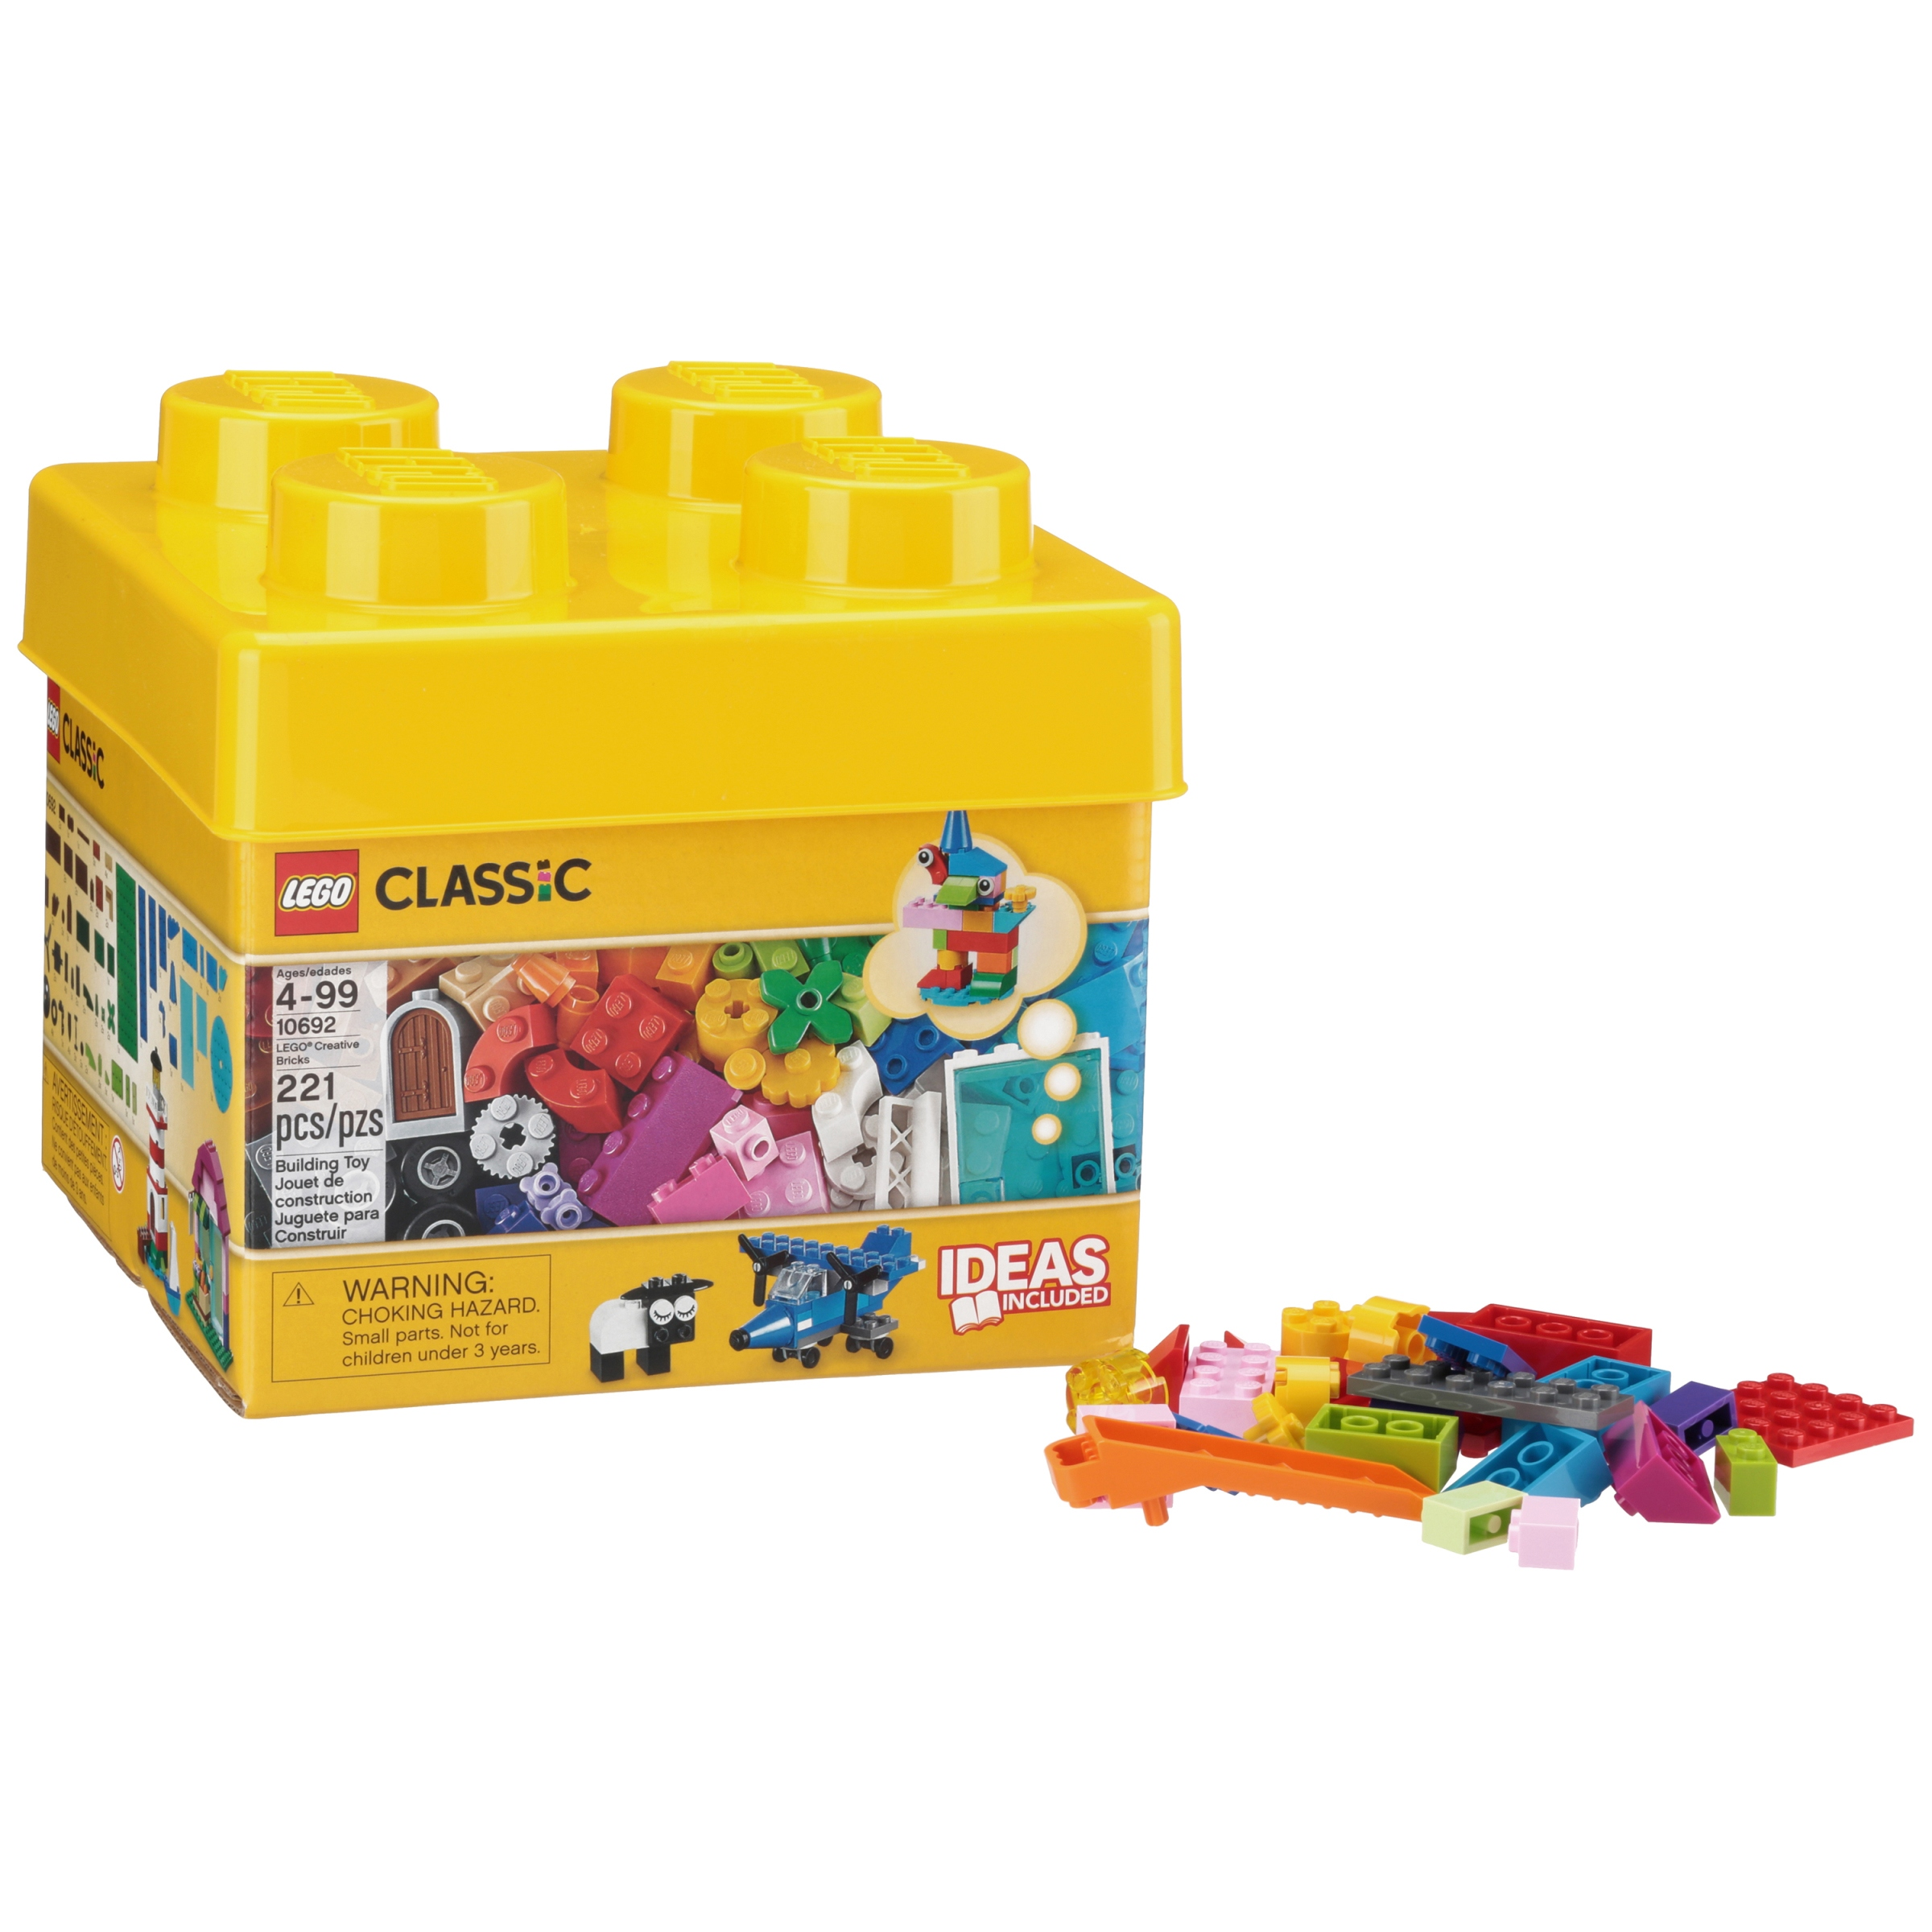 Lego® Classic Creative Bricks 221 pc Box - Walmart.com